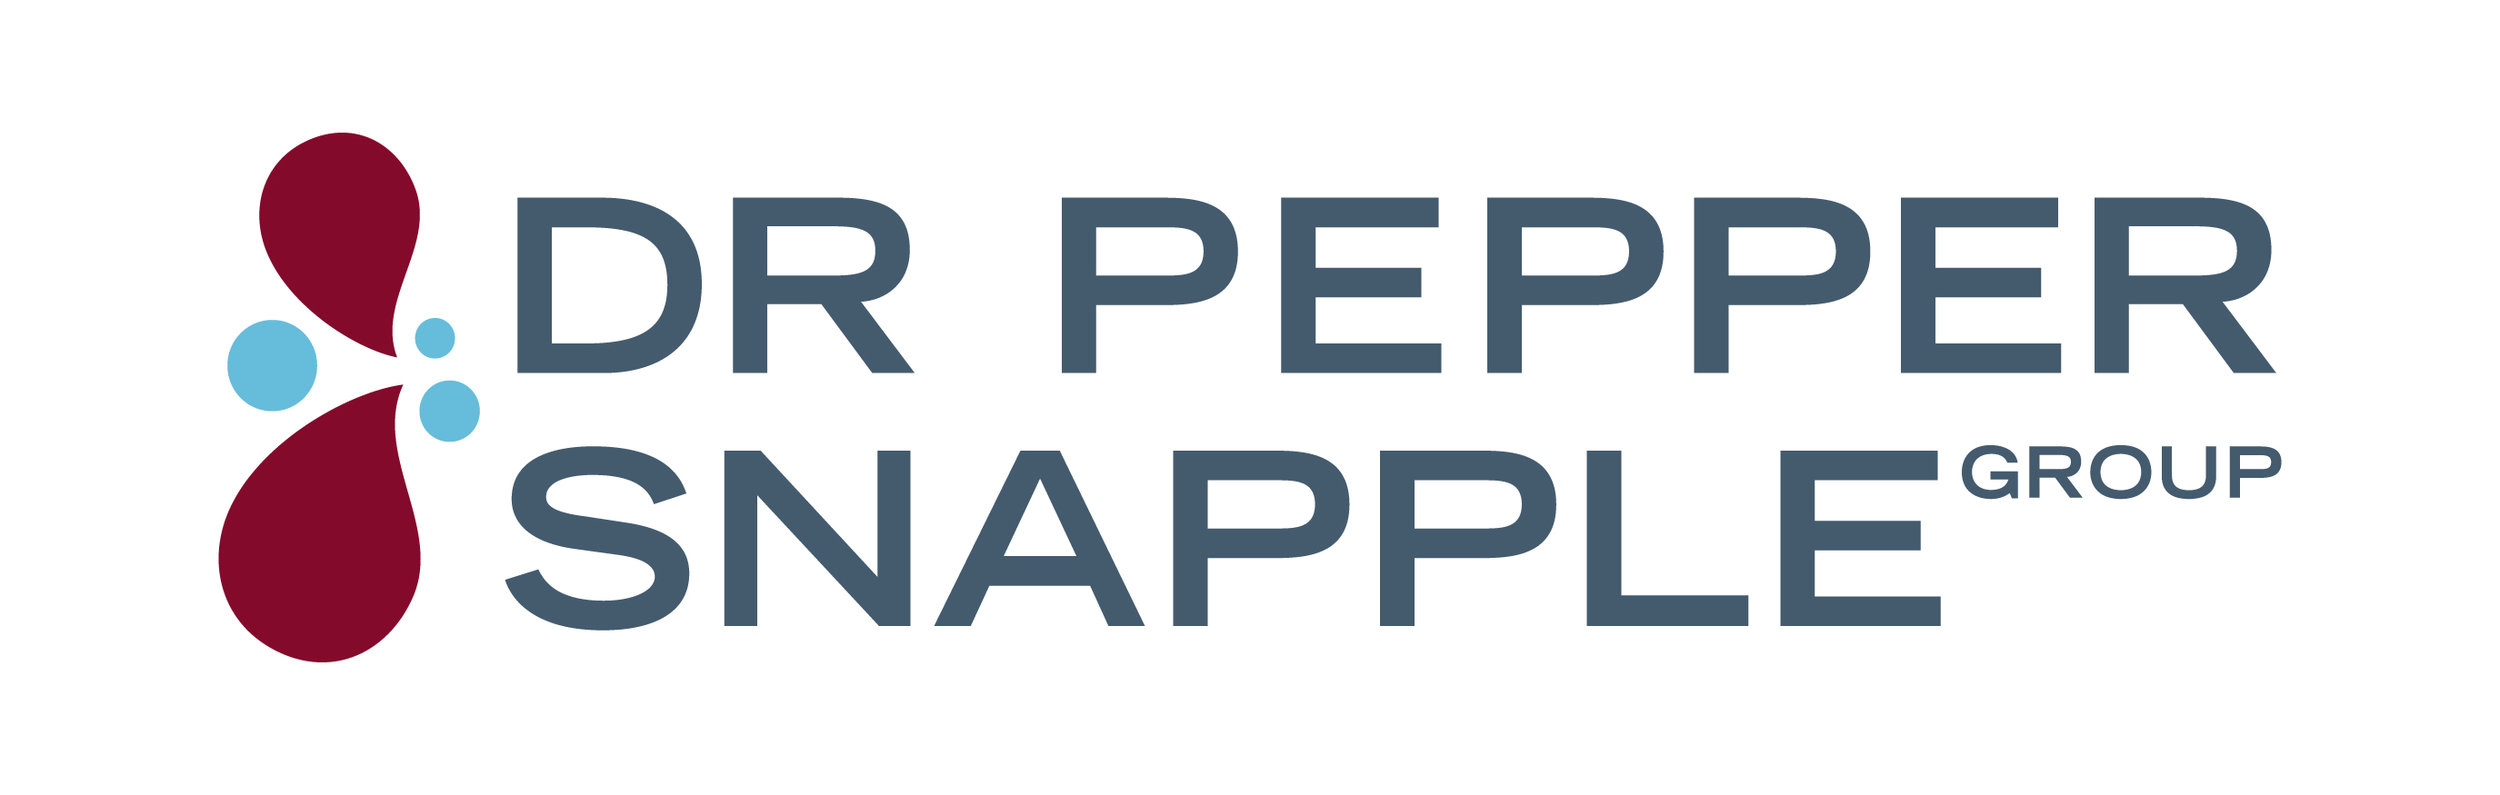 Dr-Pepper-Snapple-Group.jpg